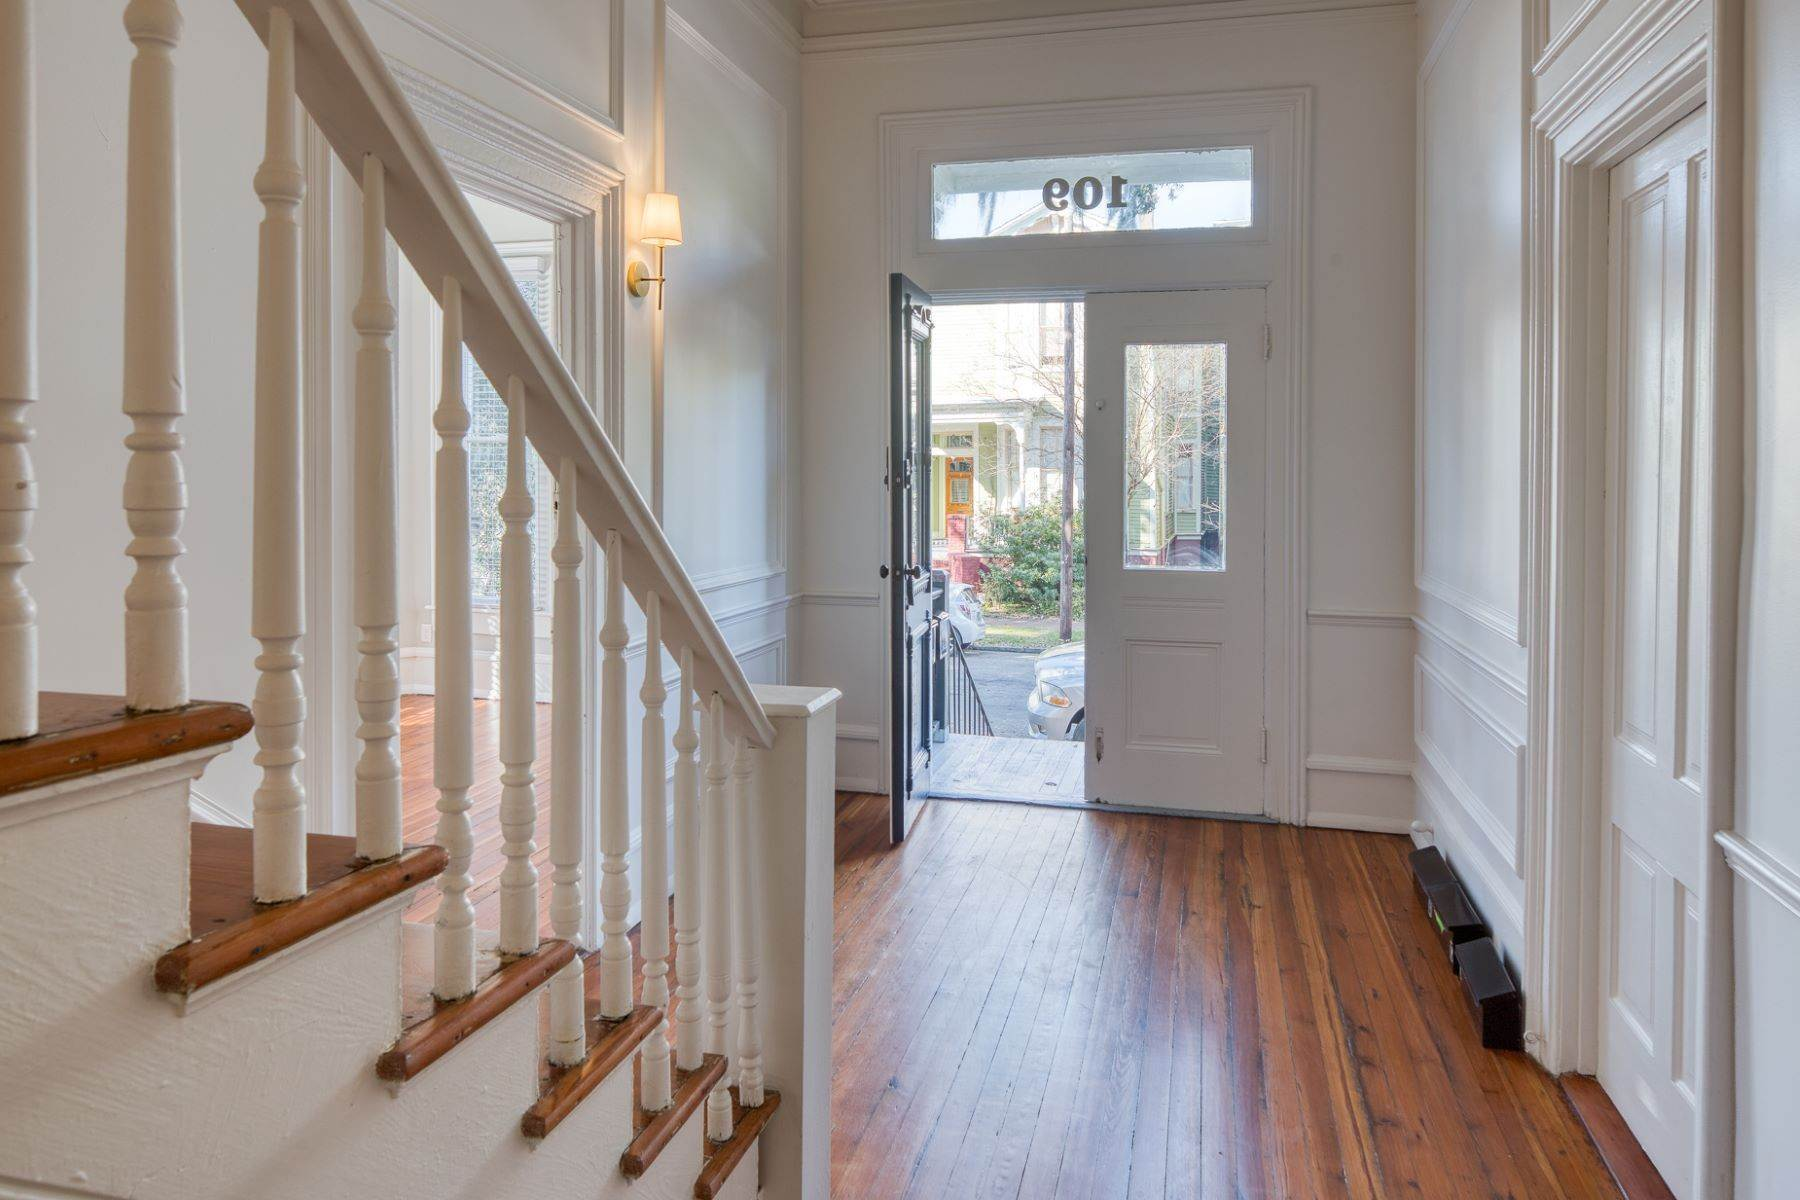 6. Property for Sale at Stunning Six Unit Victorian Apartment Building Near Forsyth Park 109 E Duffy Street Savannah, Georgia 31401 United States